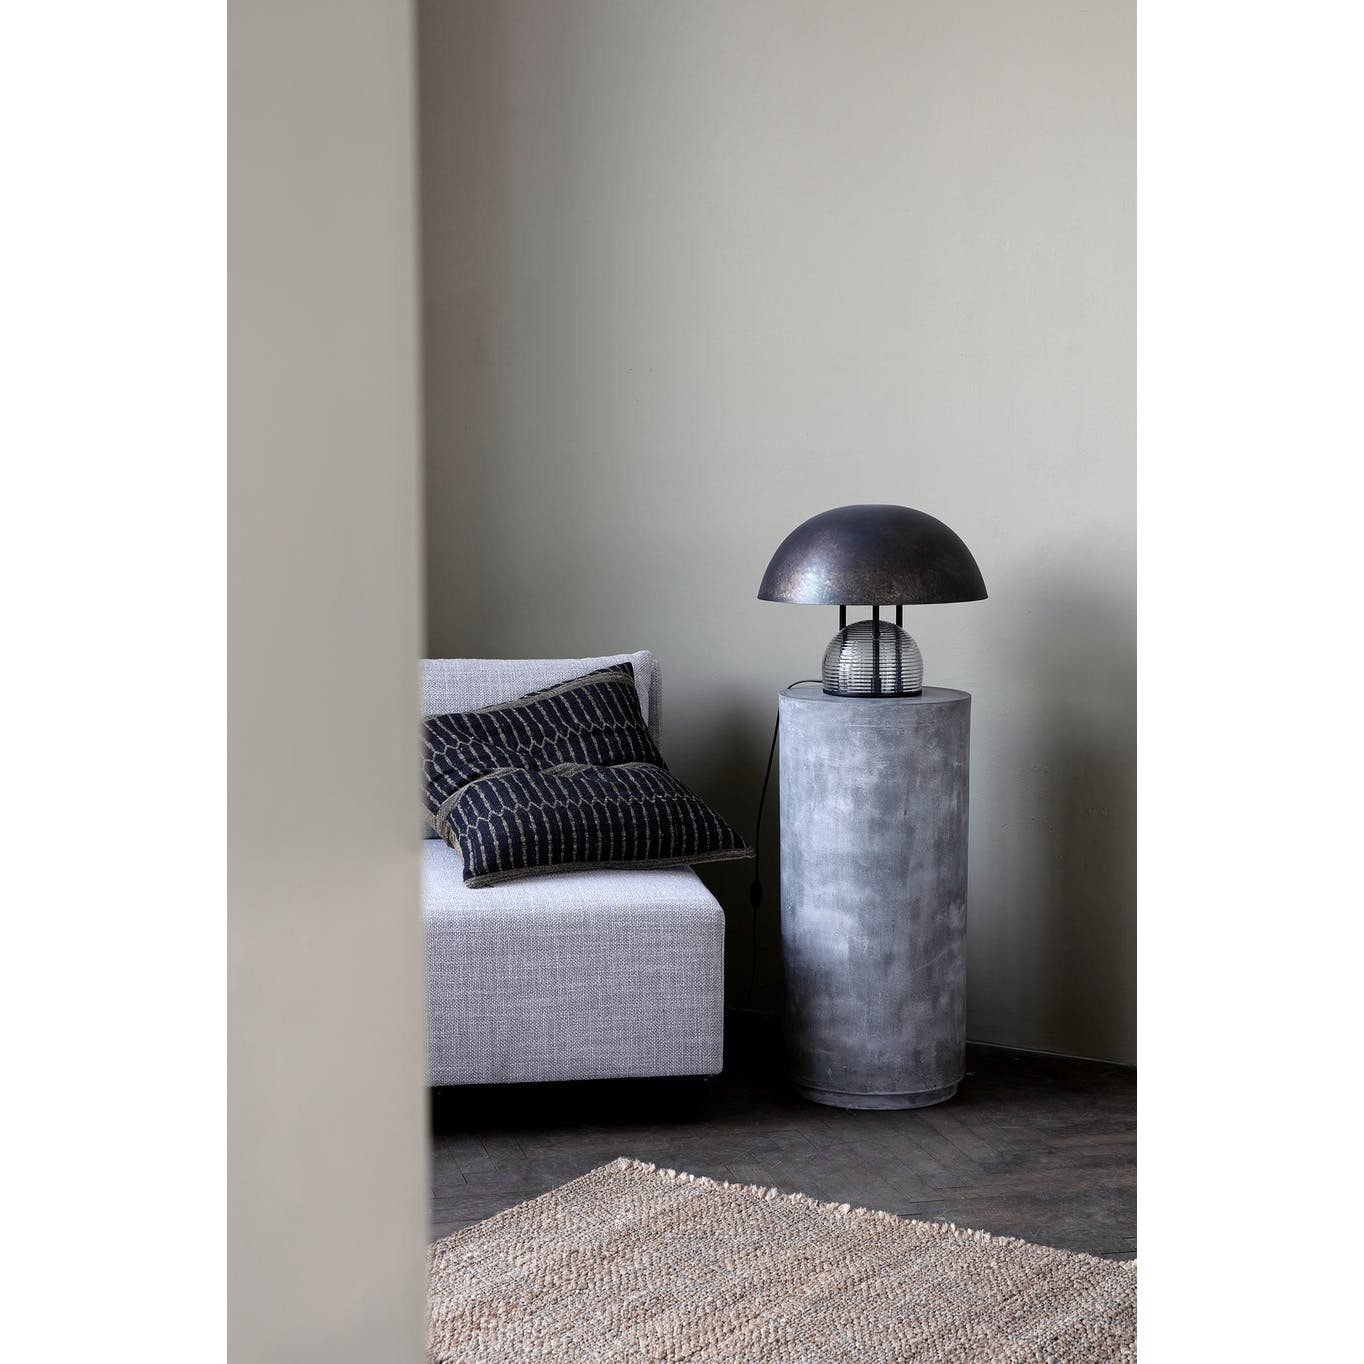 Bruno table lamp in antique brown sitting on top of small side table next to grey armchair